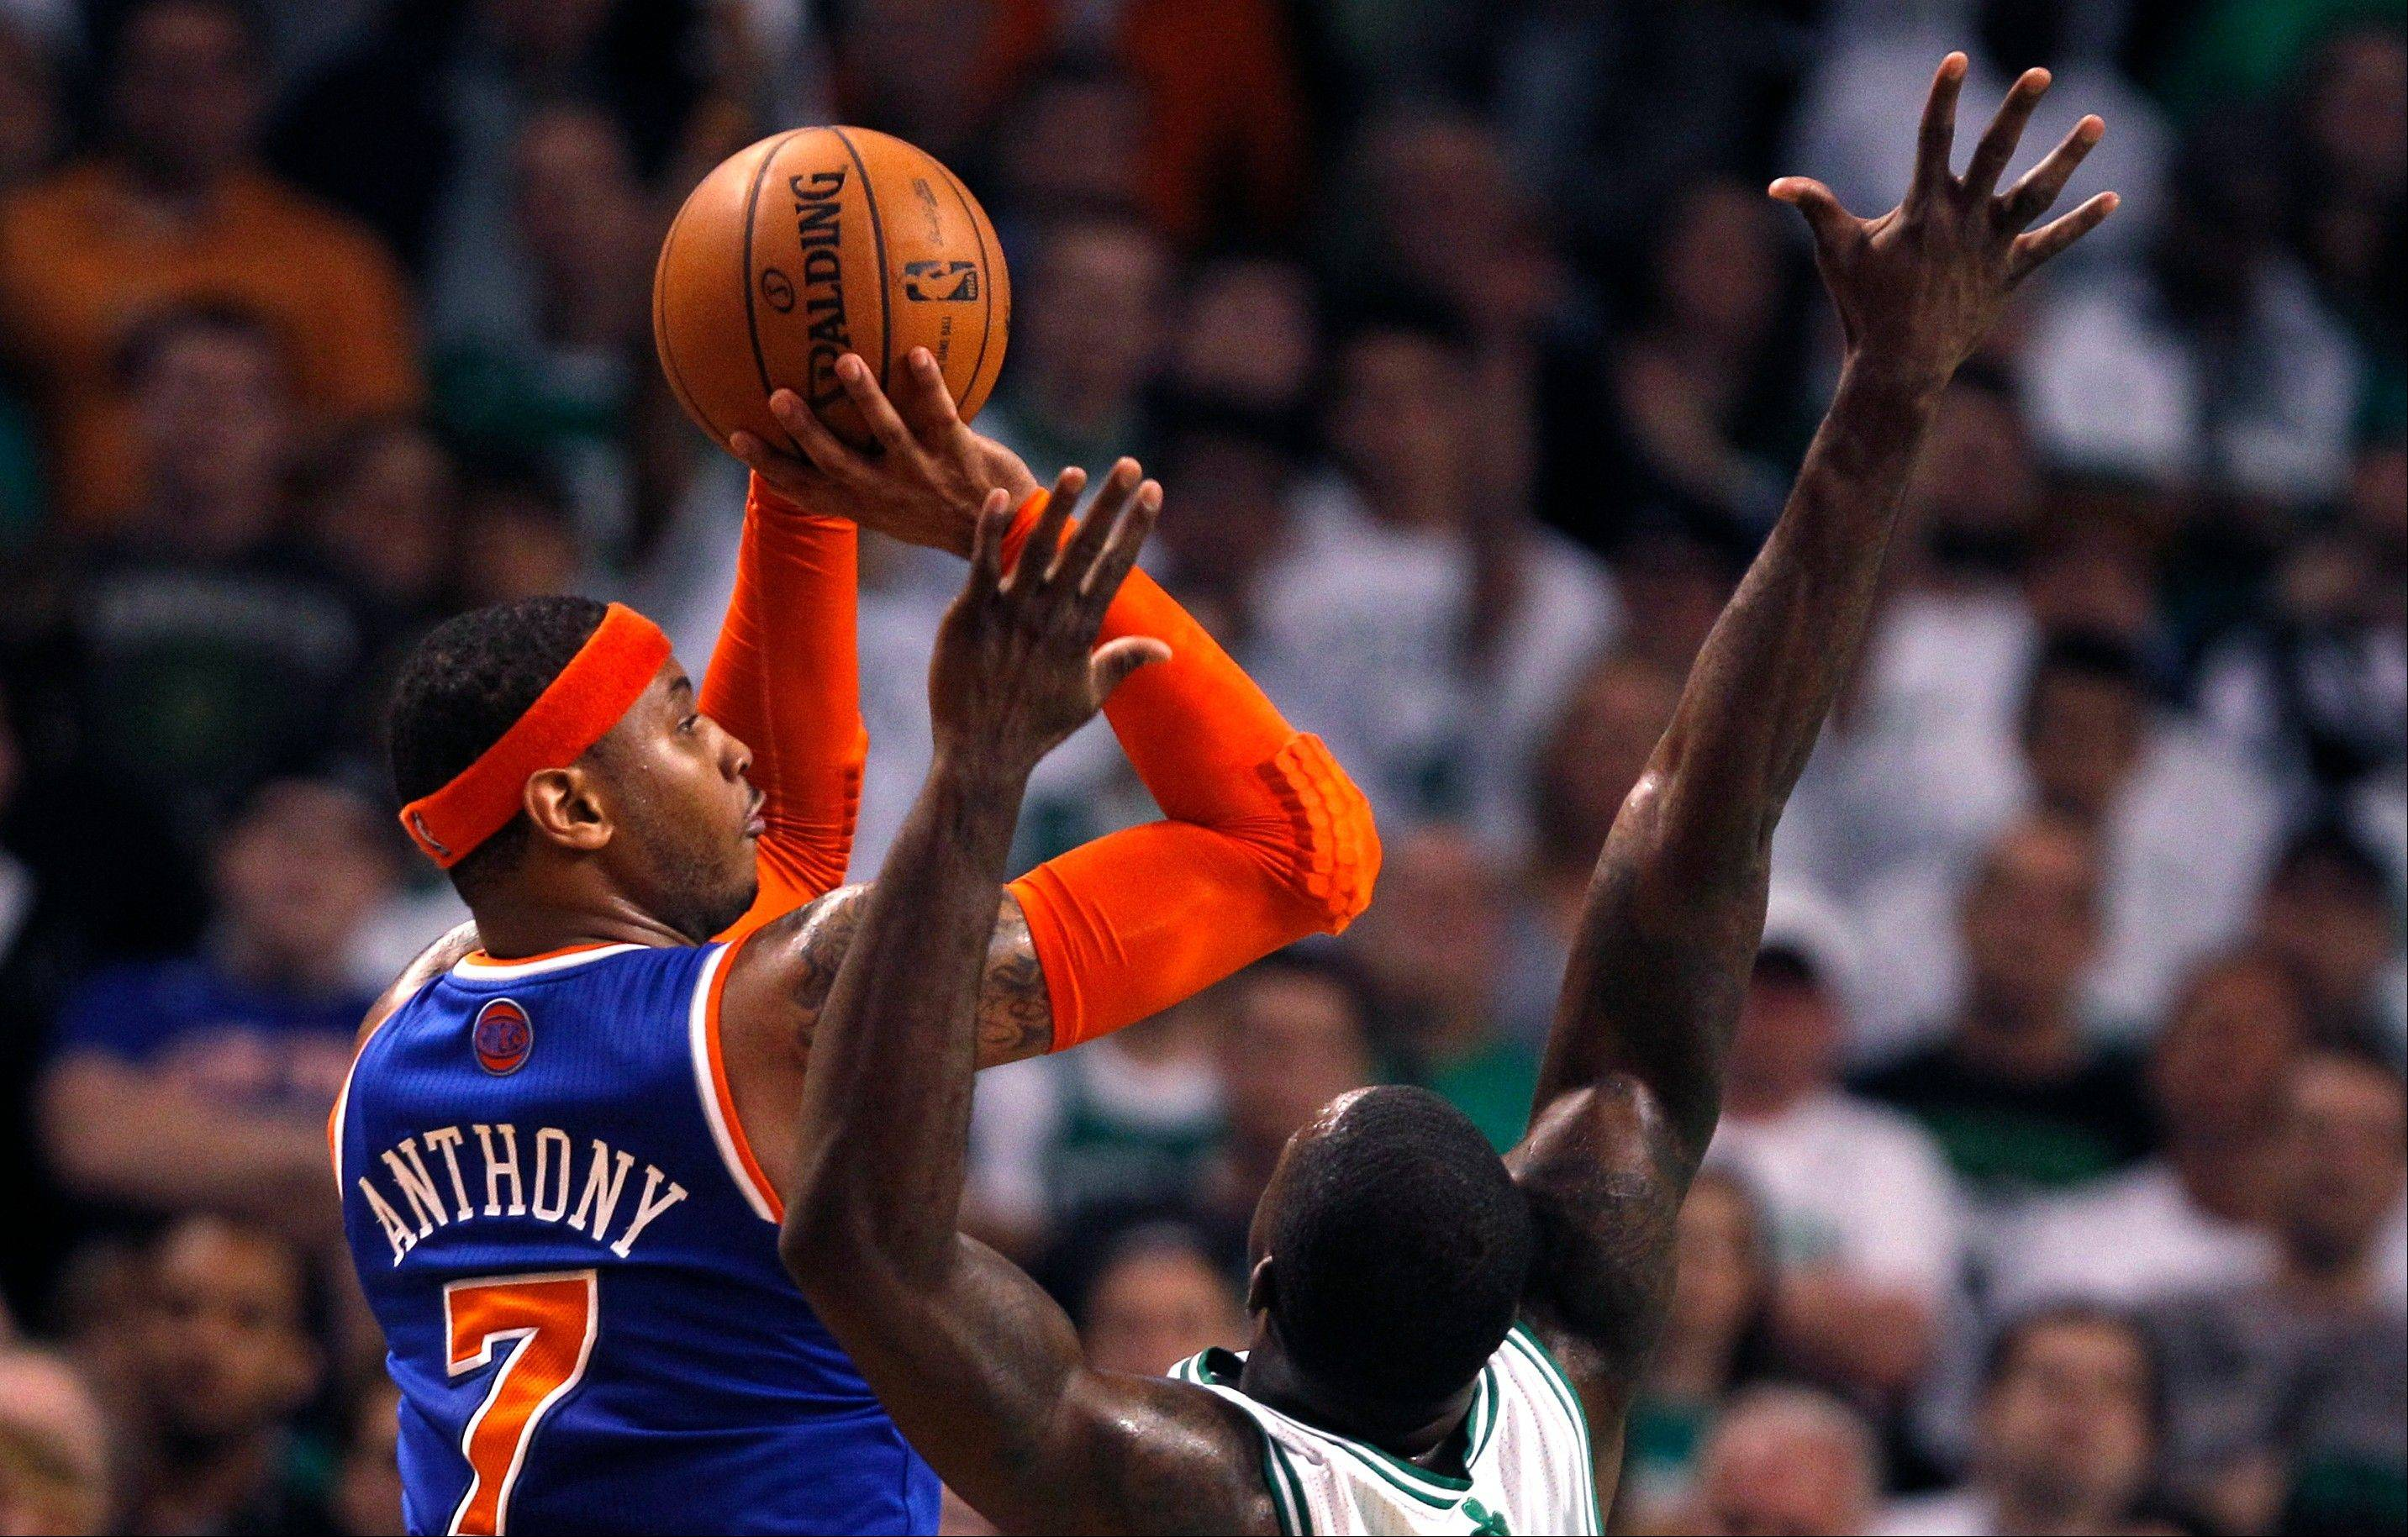 New York Knicks forward Carmelo Anthony (7) shoots over Boston Celtics forward Jeff Green during the second quarter in Game 6 of their first-round NBA basketball playoff series in Boston, Friday, May 3, 2013. (AP Photo/Charles Krupa)